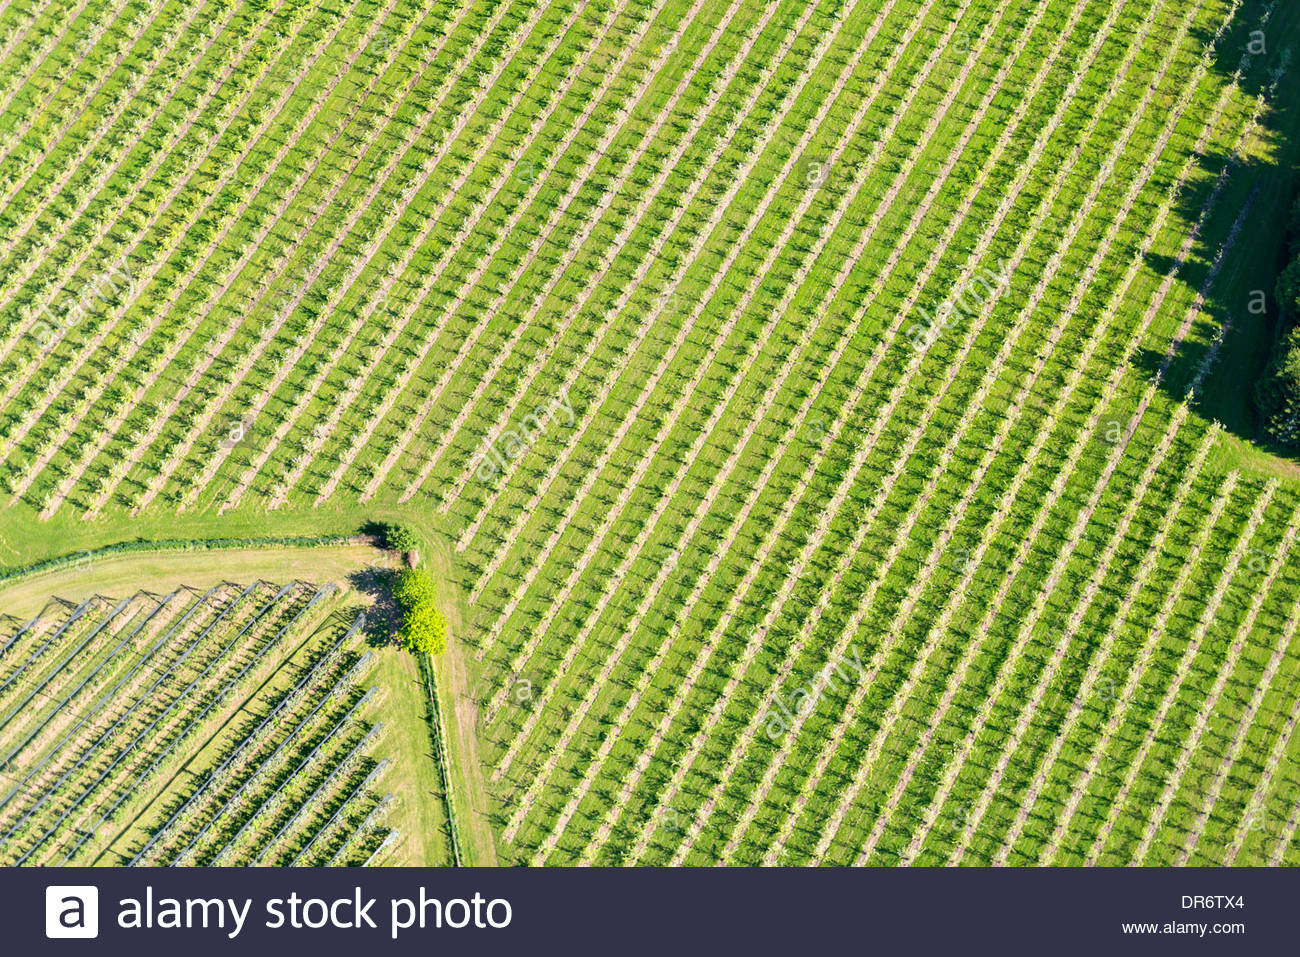 Germany, Baden-Wurttemberg, Friedrichshafen, Aerial view of fruit plantation - Stock Image